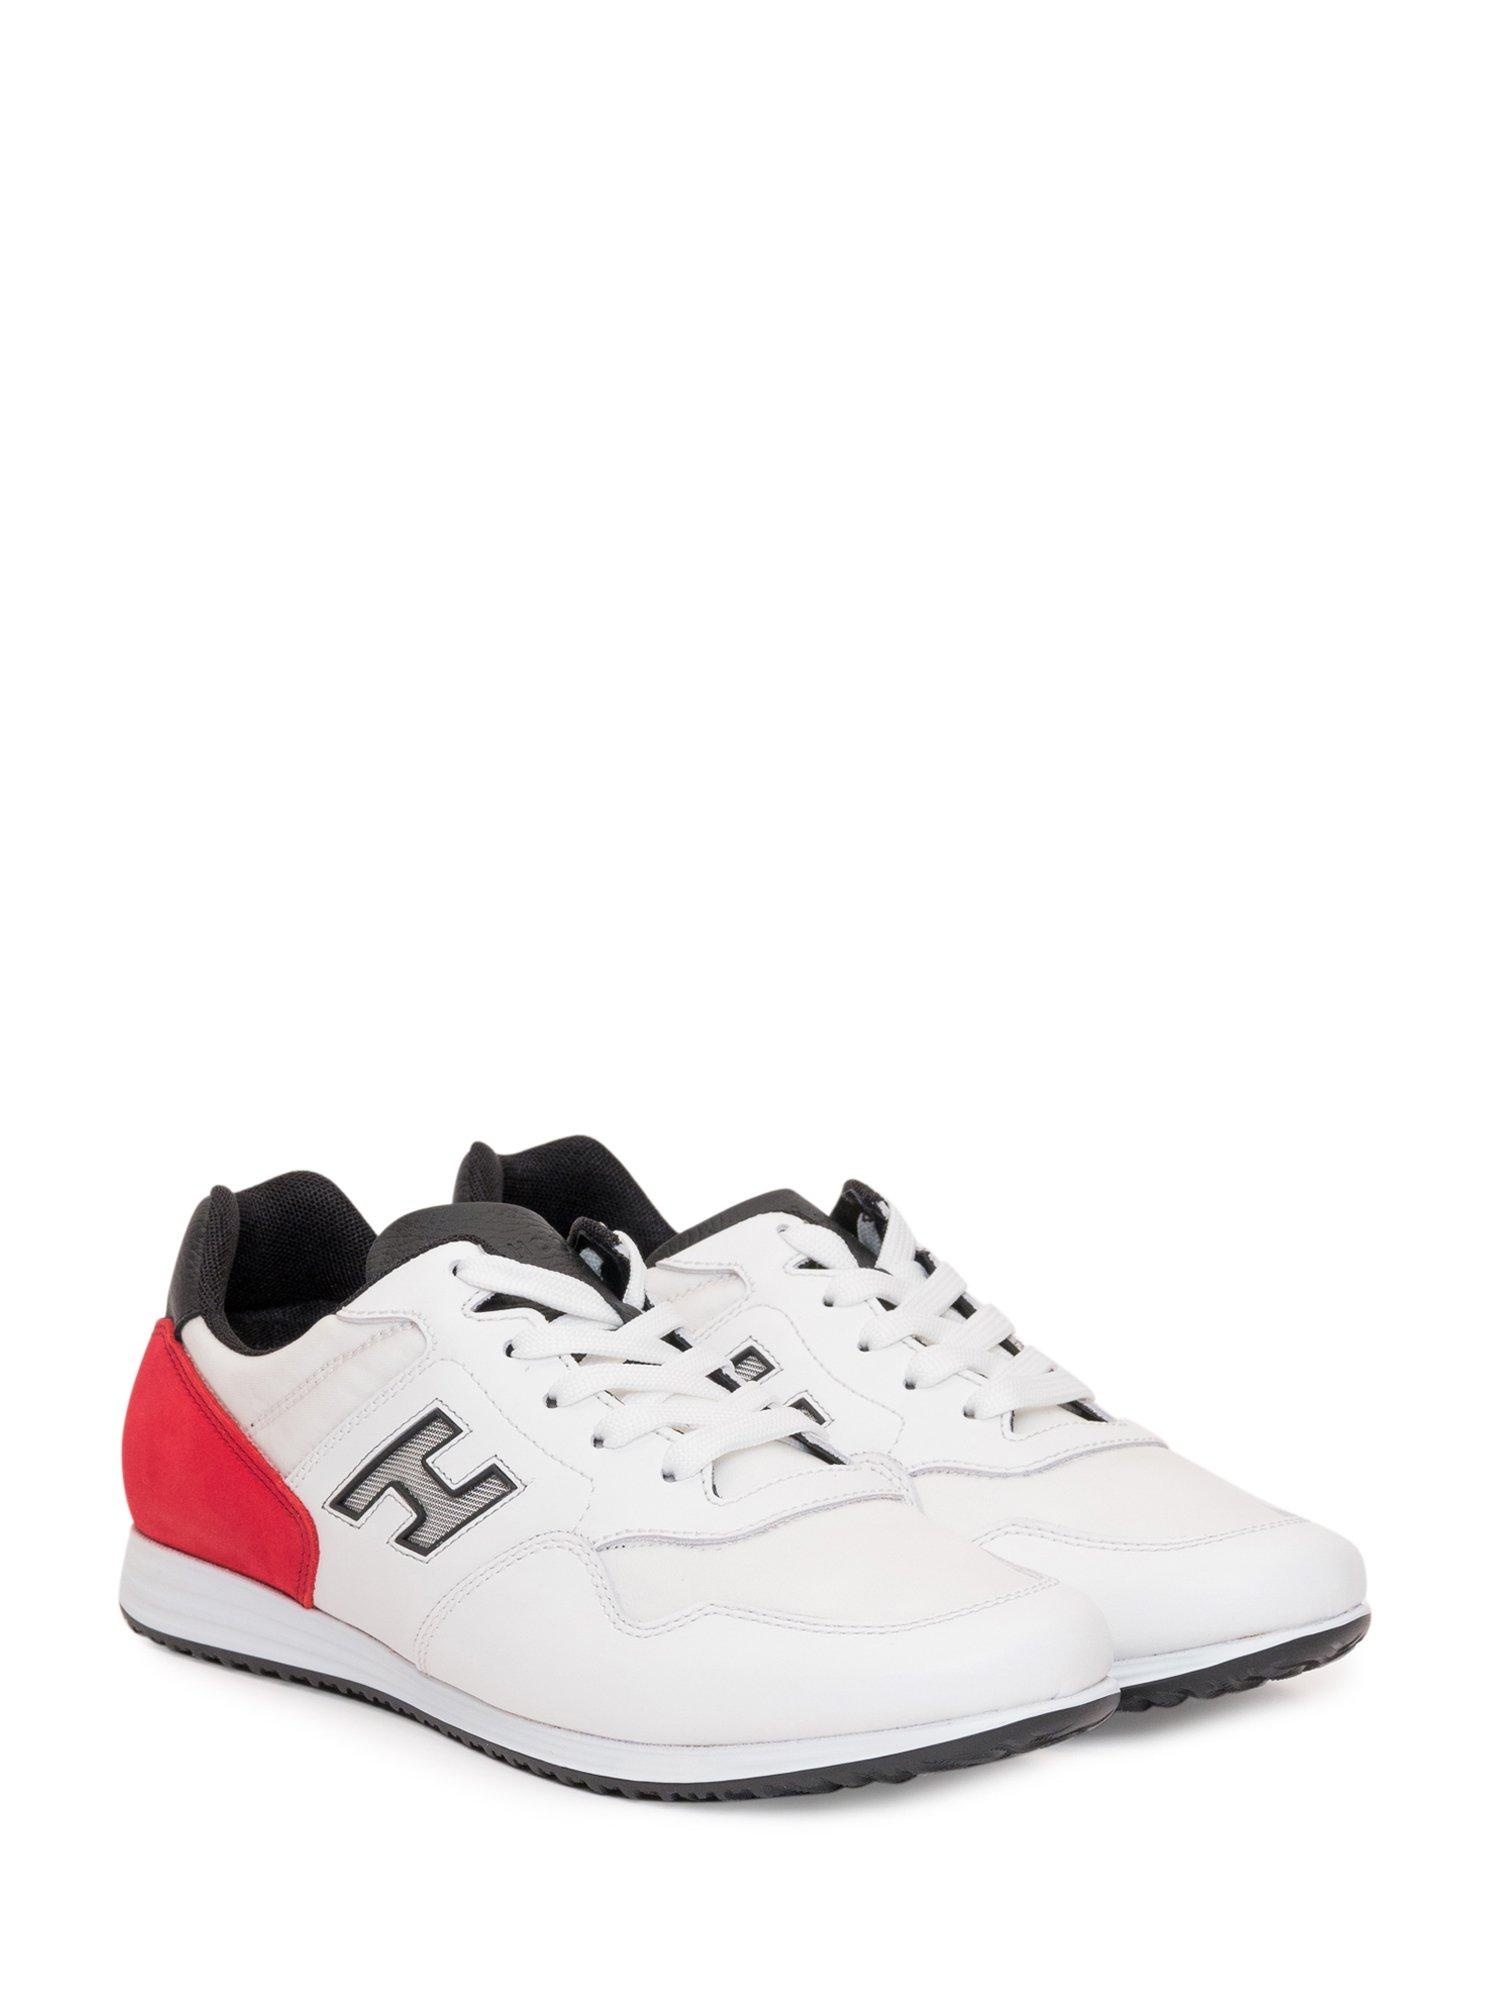 Hogan Leather H205 Olympia Low-top Sneakers in White for Men - Lyst